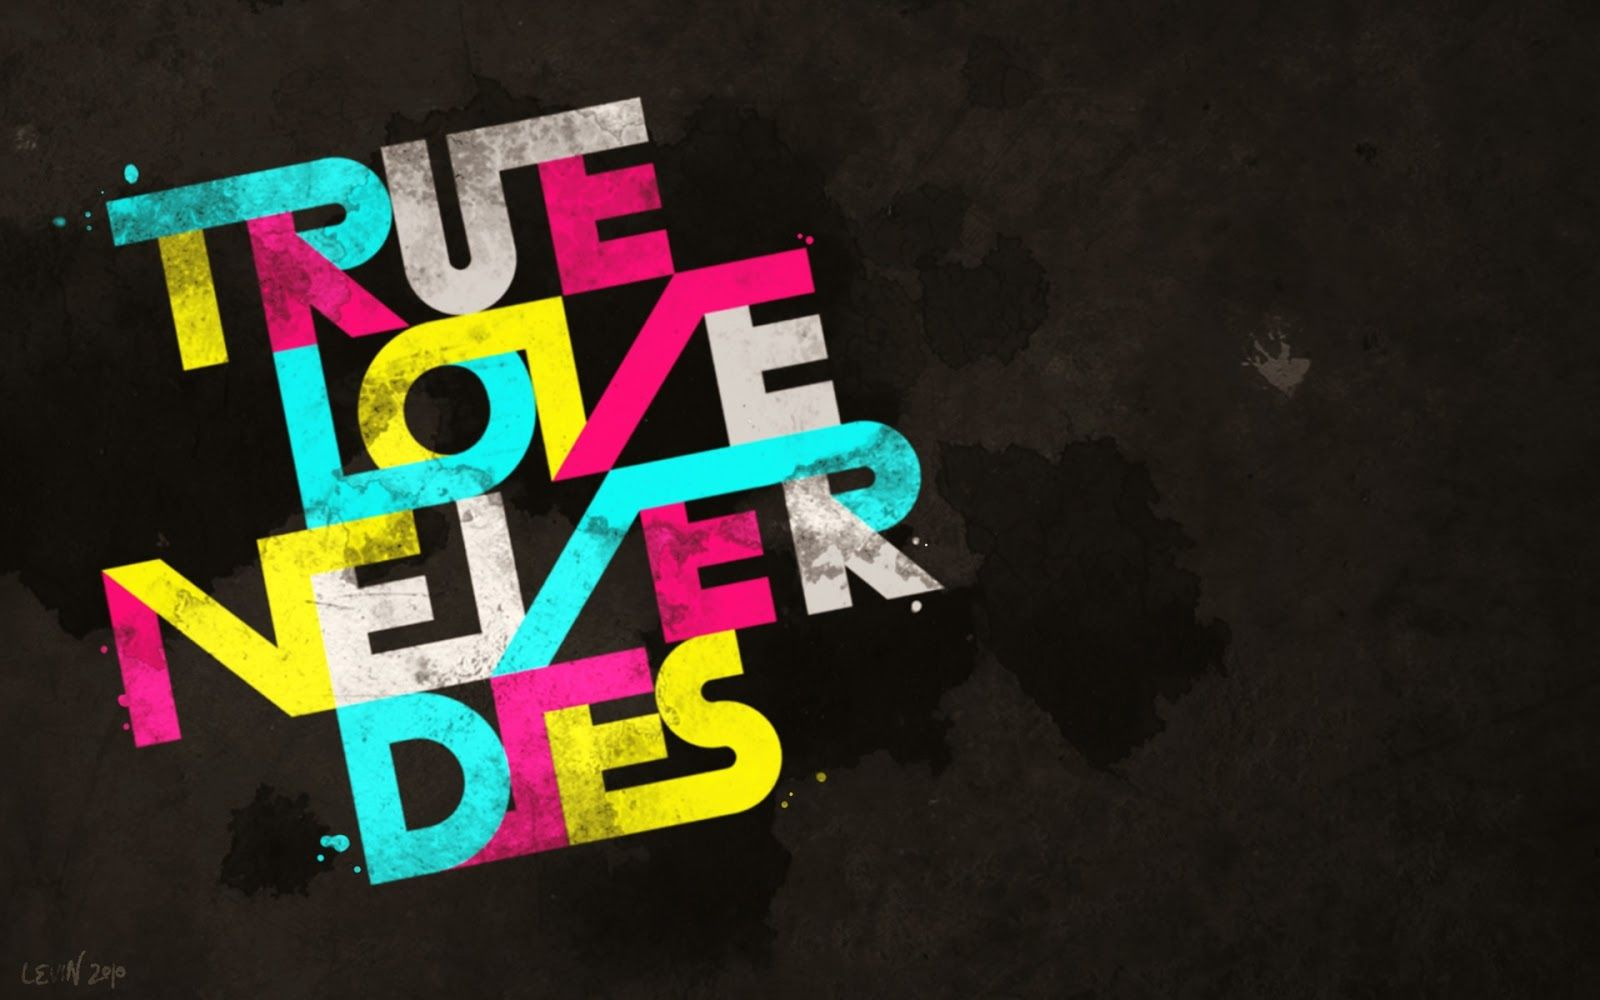 Whatsapp DP image profile Picture,true love never dies | Love quotes  wallpaper, Love picture quotes, True love images